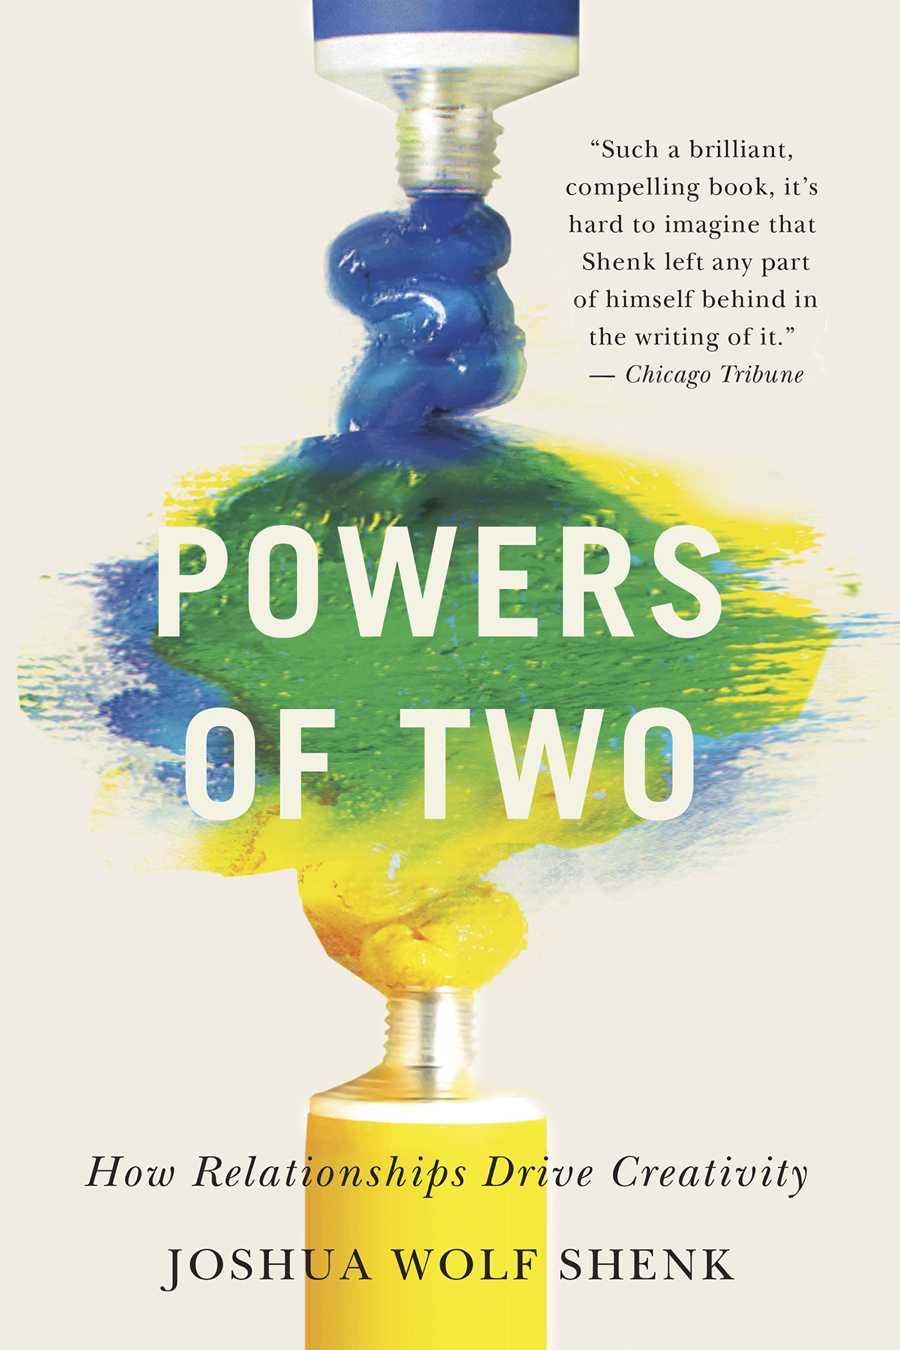 powers of two cover.jpeg